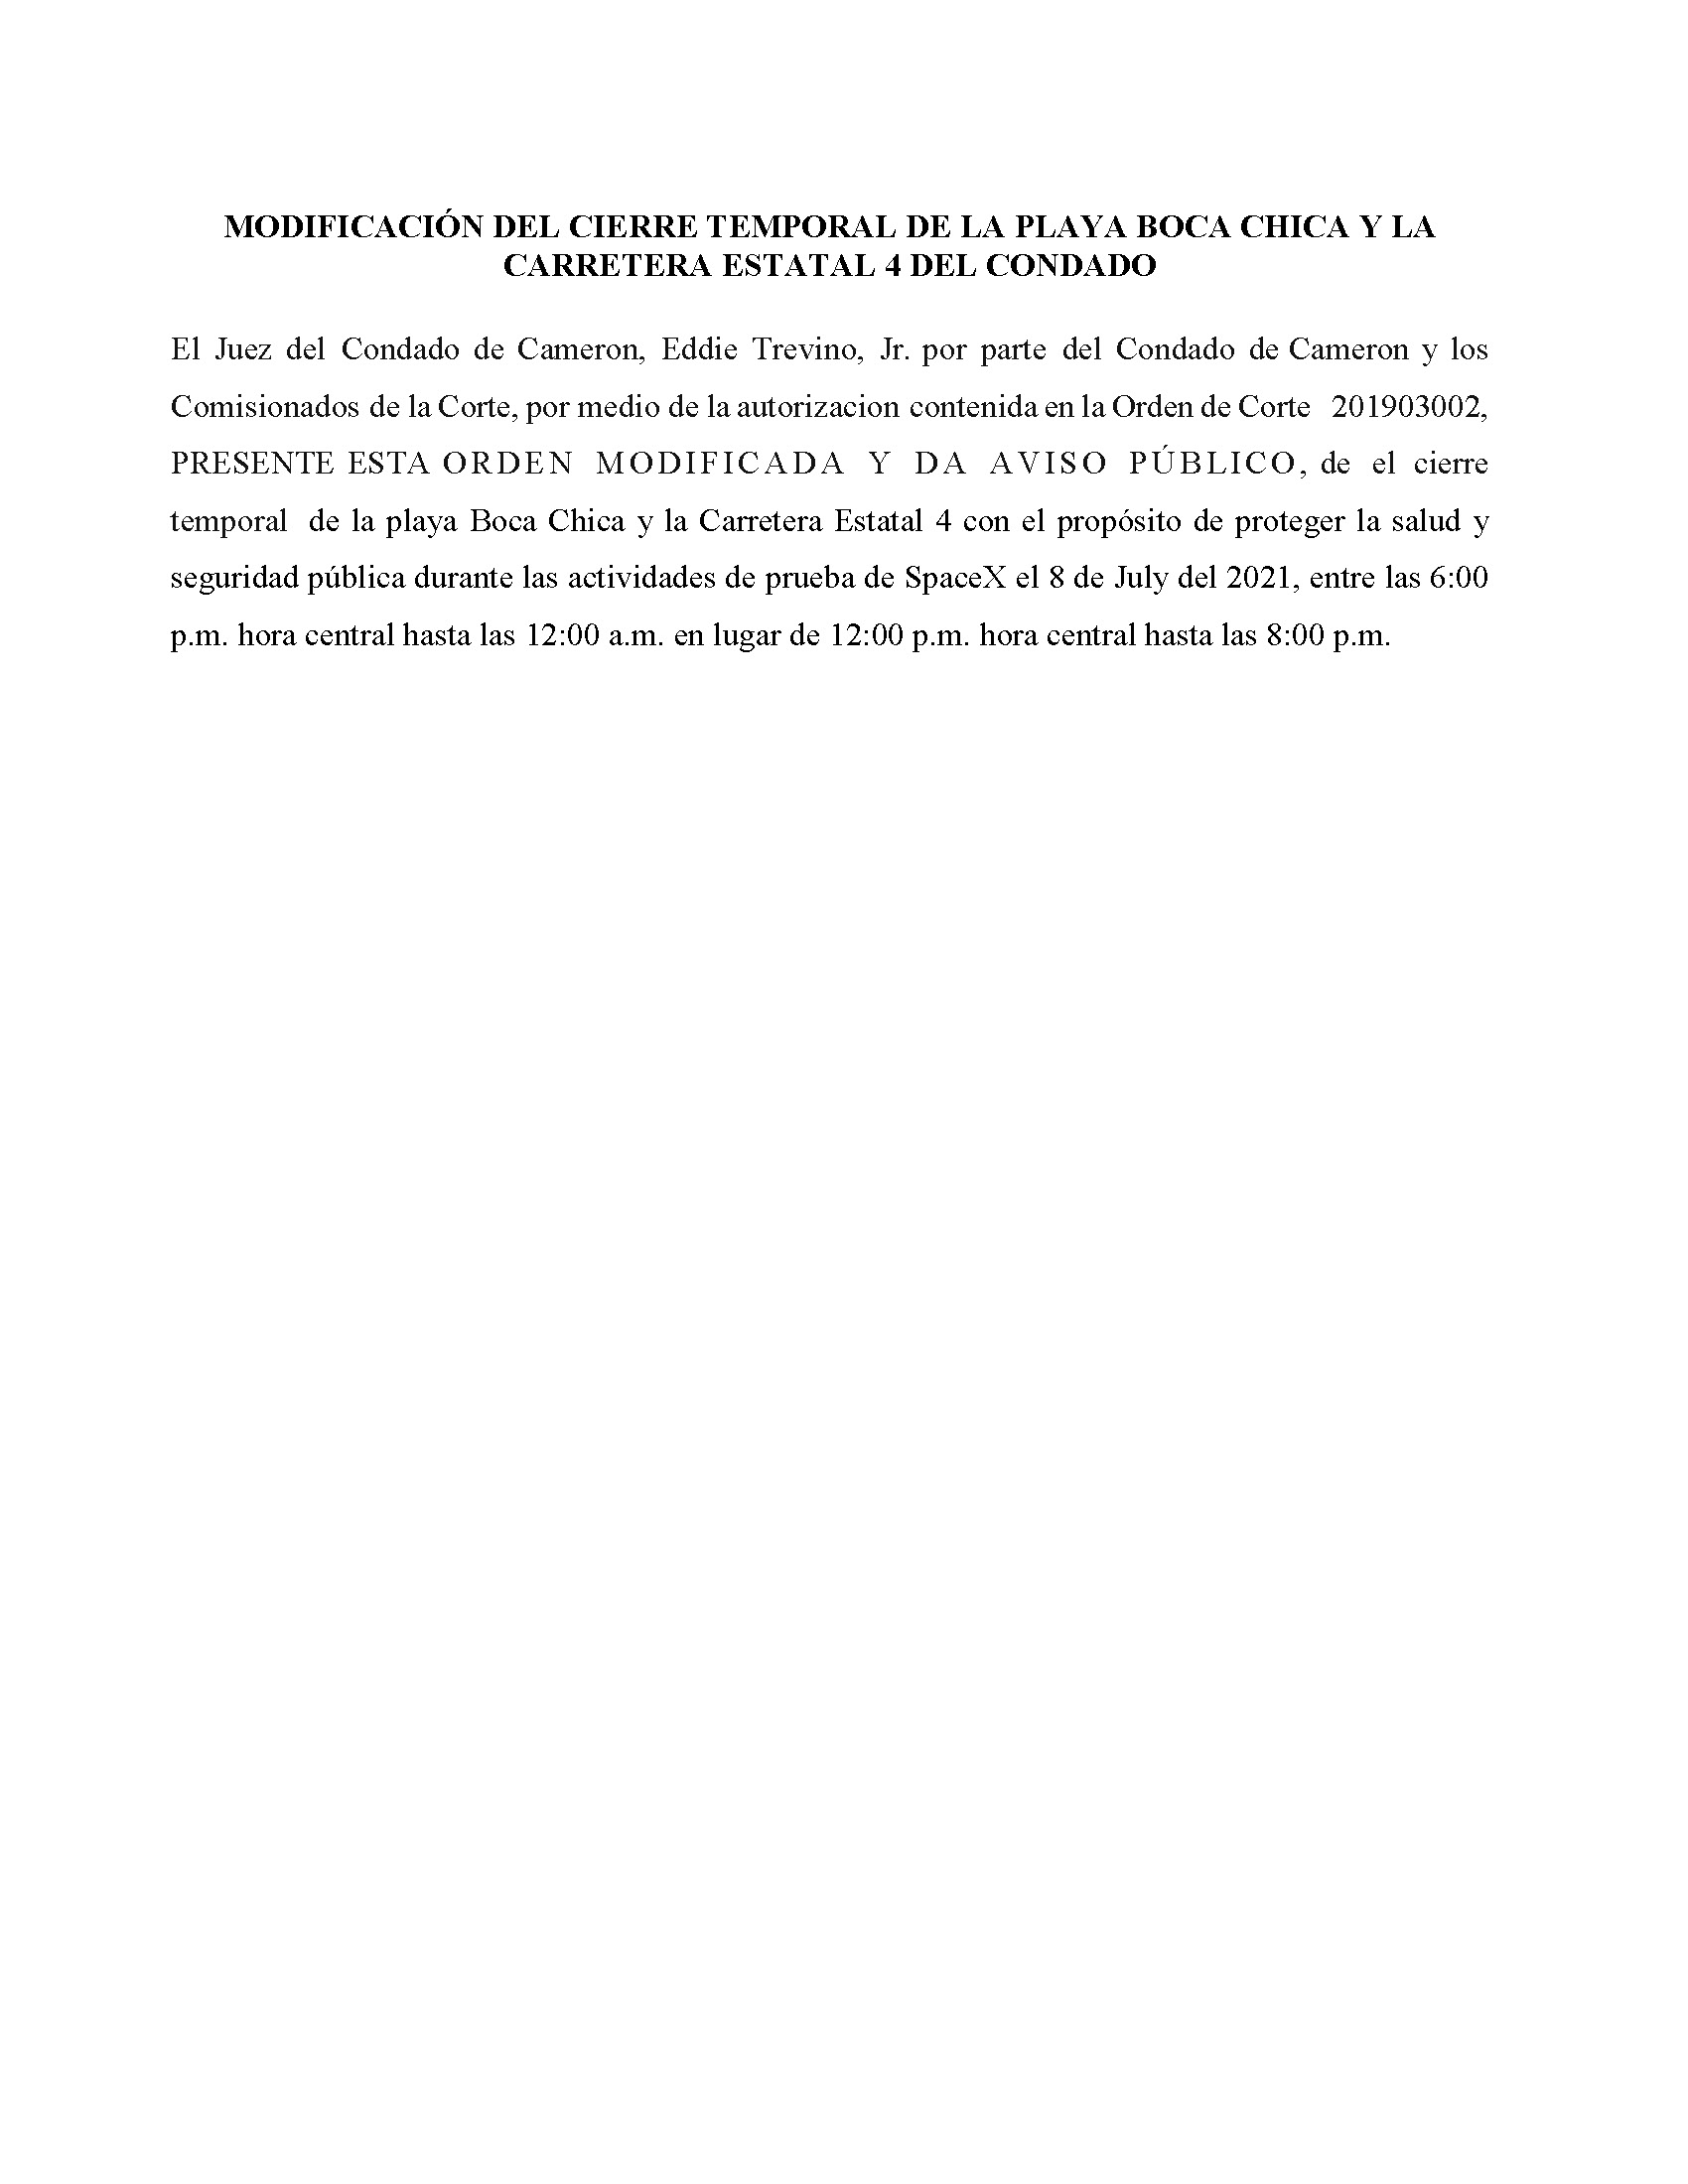 Amended Order In Spanish.07.08.21